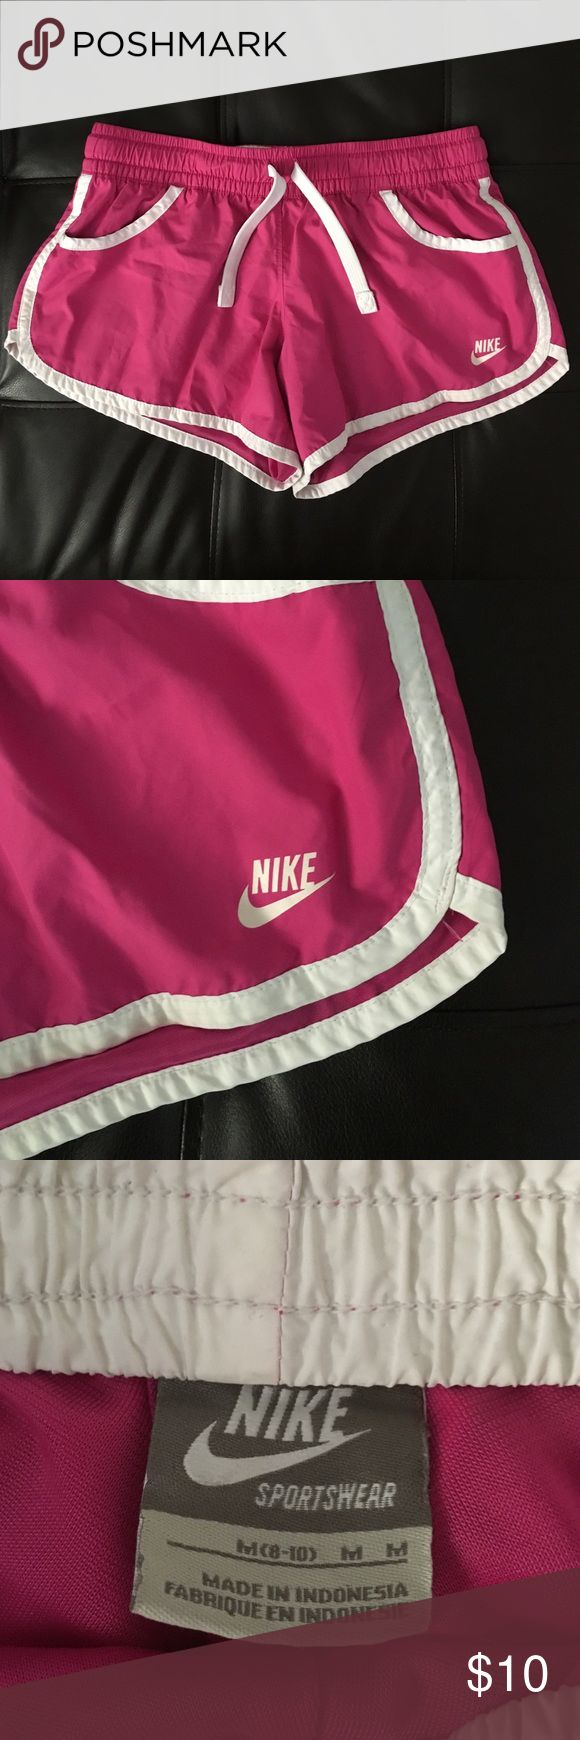 Nike Shorts Pink Women's Nike Shorts. Used but in great condition. Nike Shorts